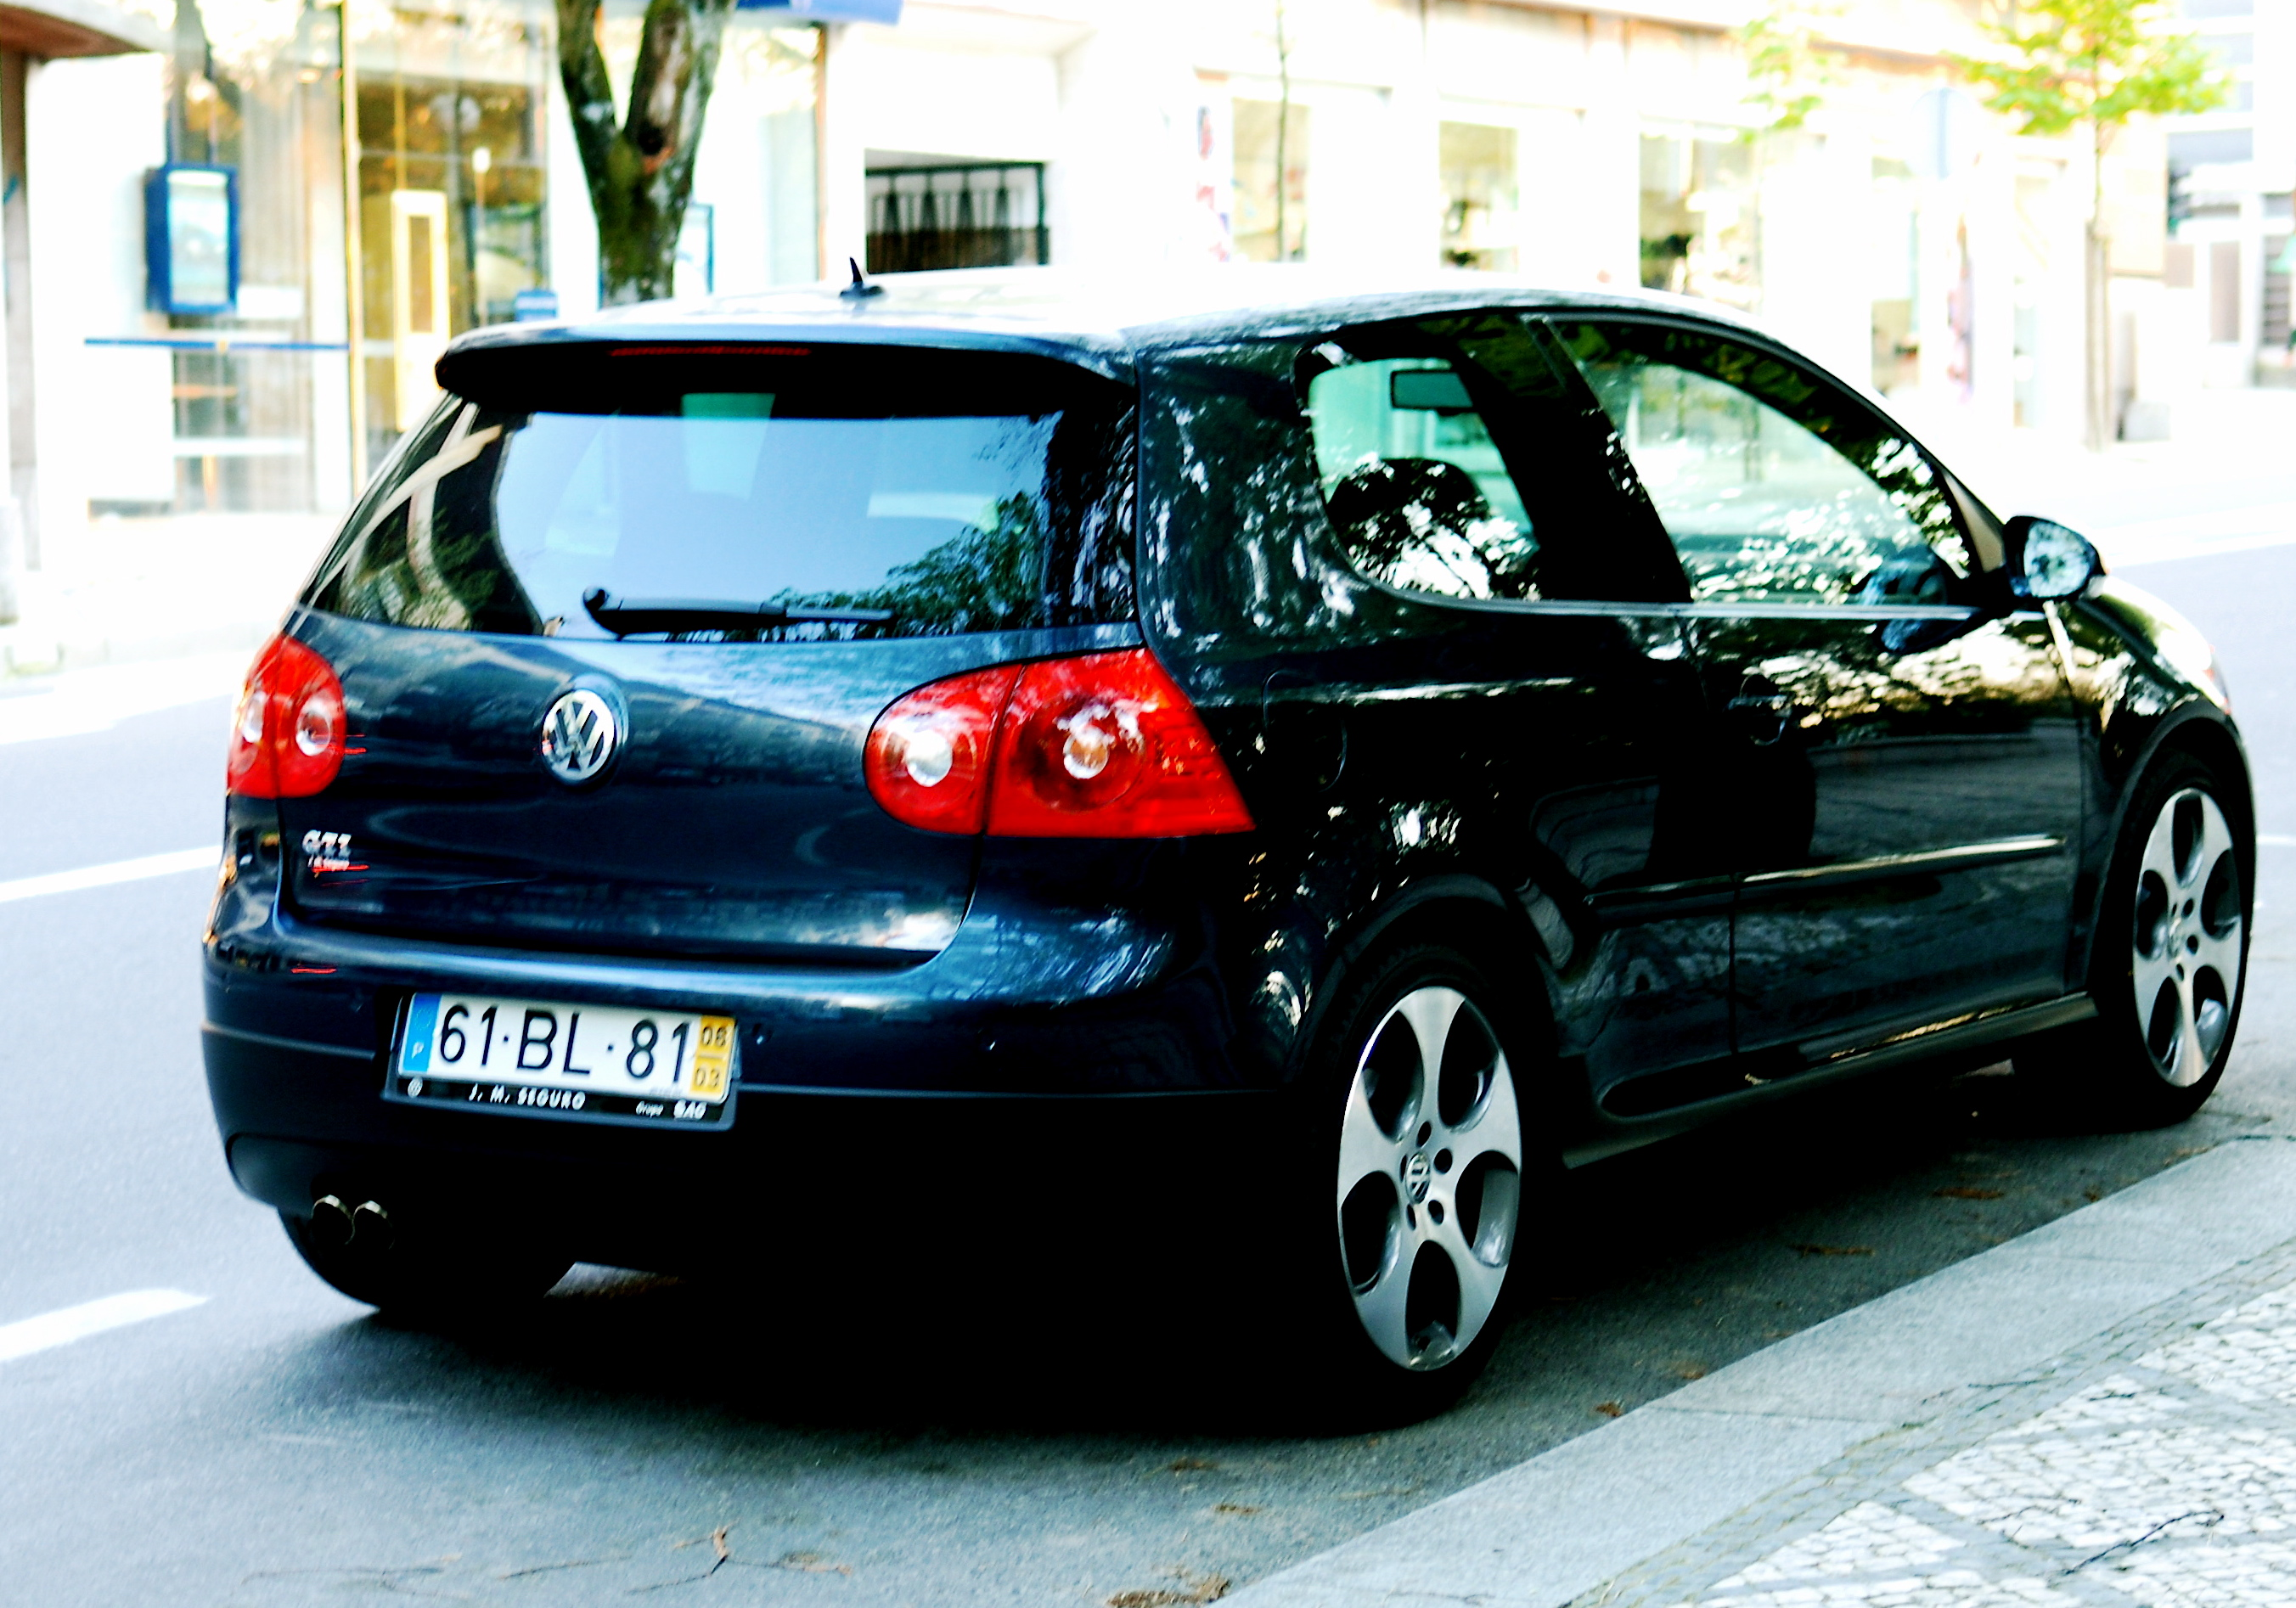 vw golf gti v flickr photo sharing. Black Bedroom Furniture Sets. Home Design Ideas